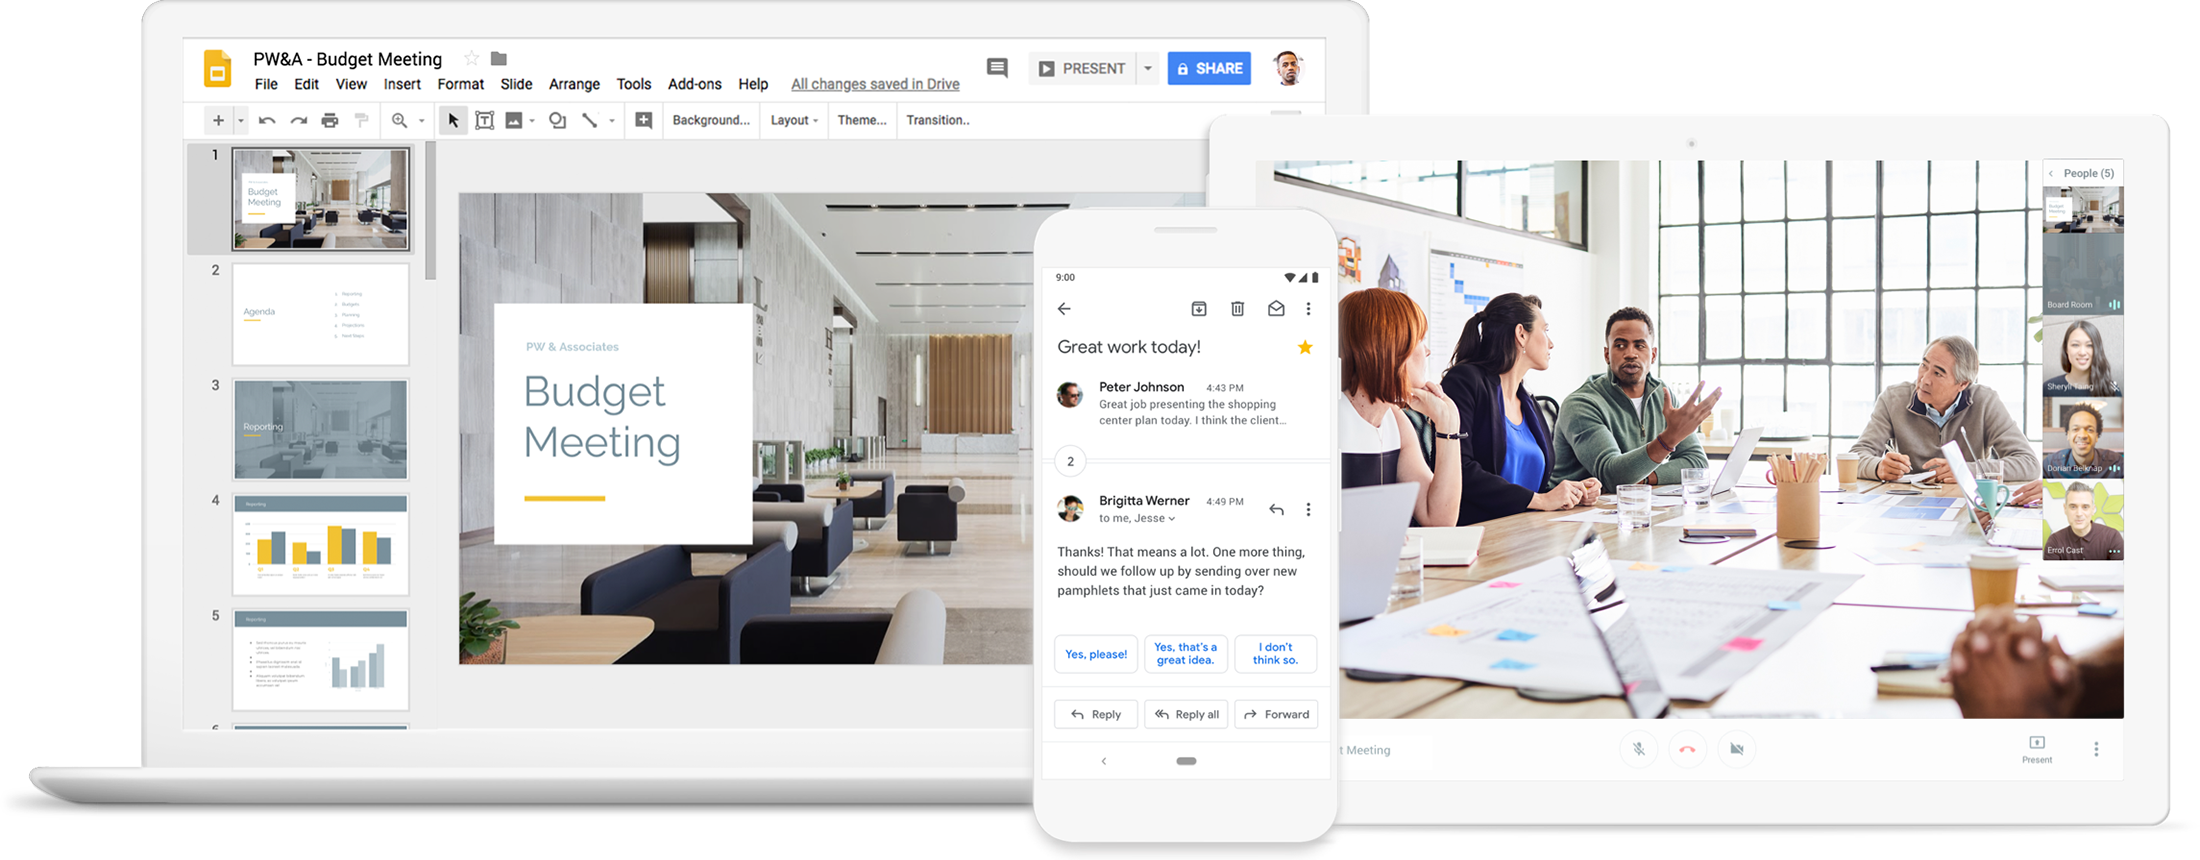 G Suite products for remote or dispersed teams